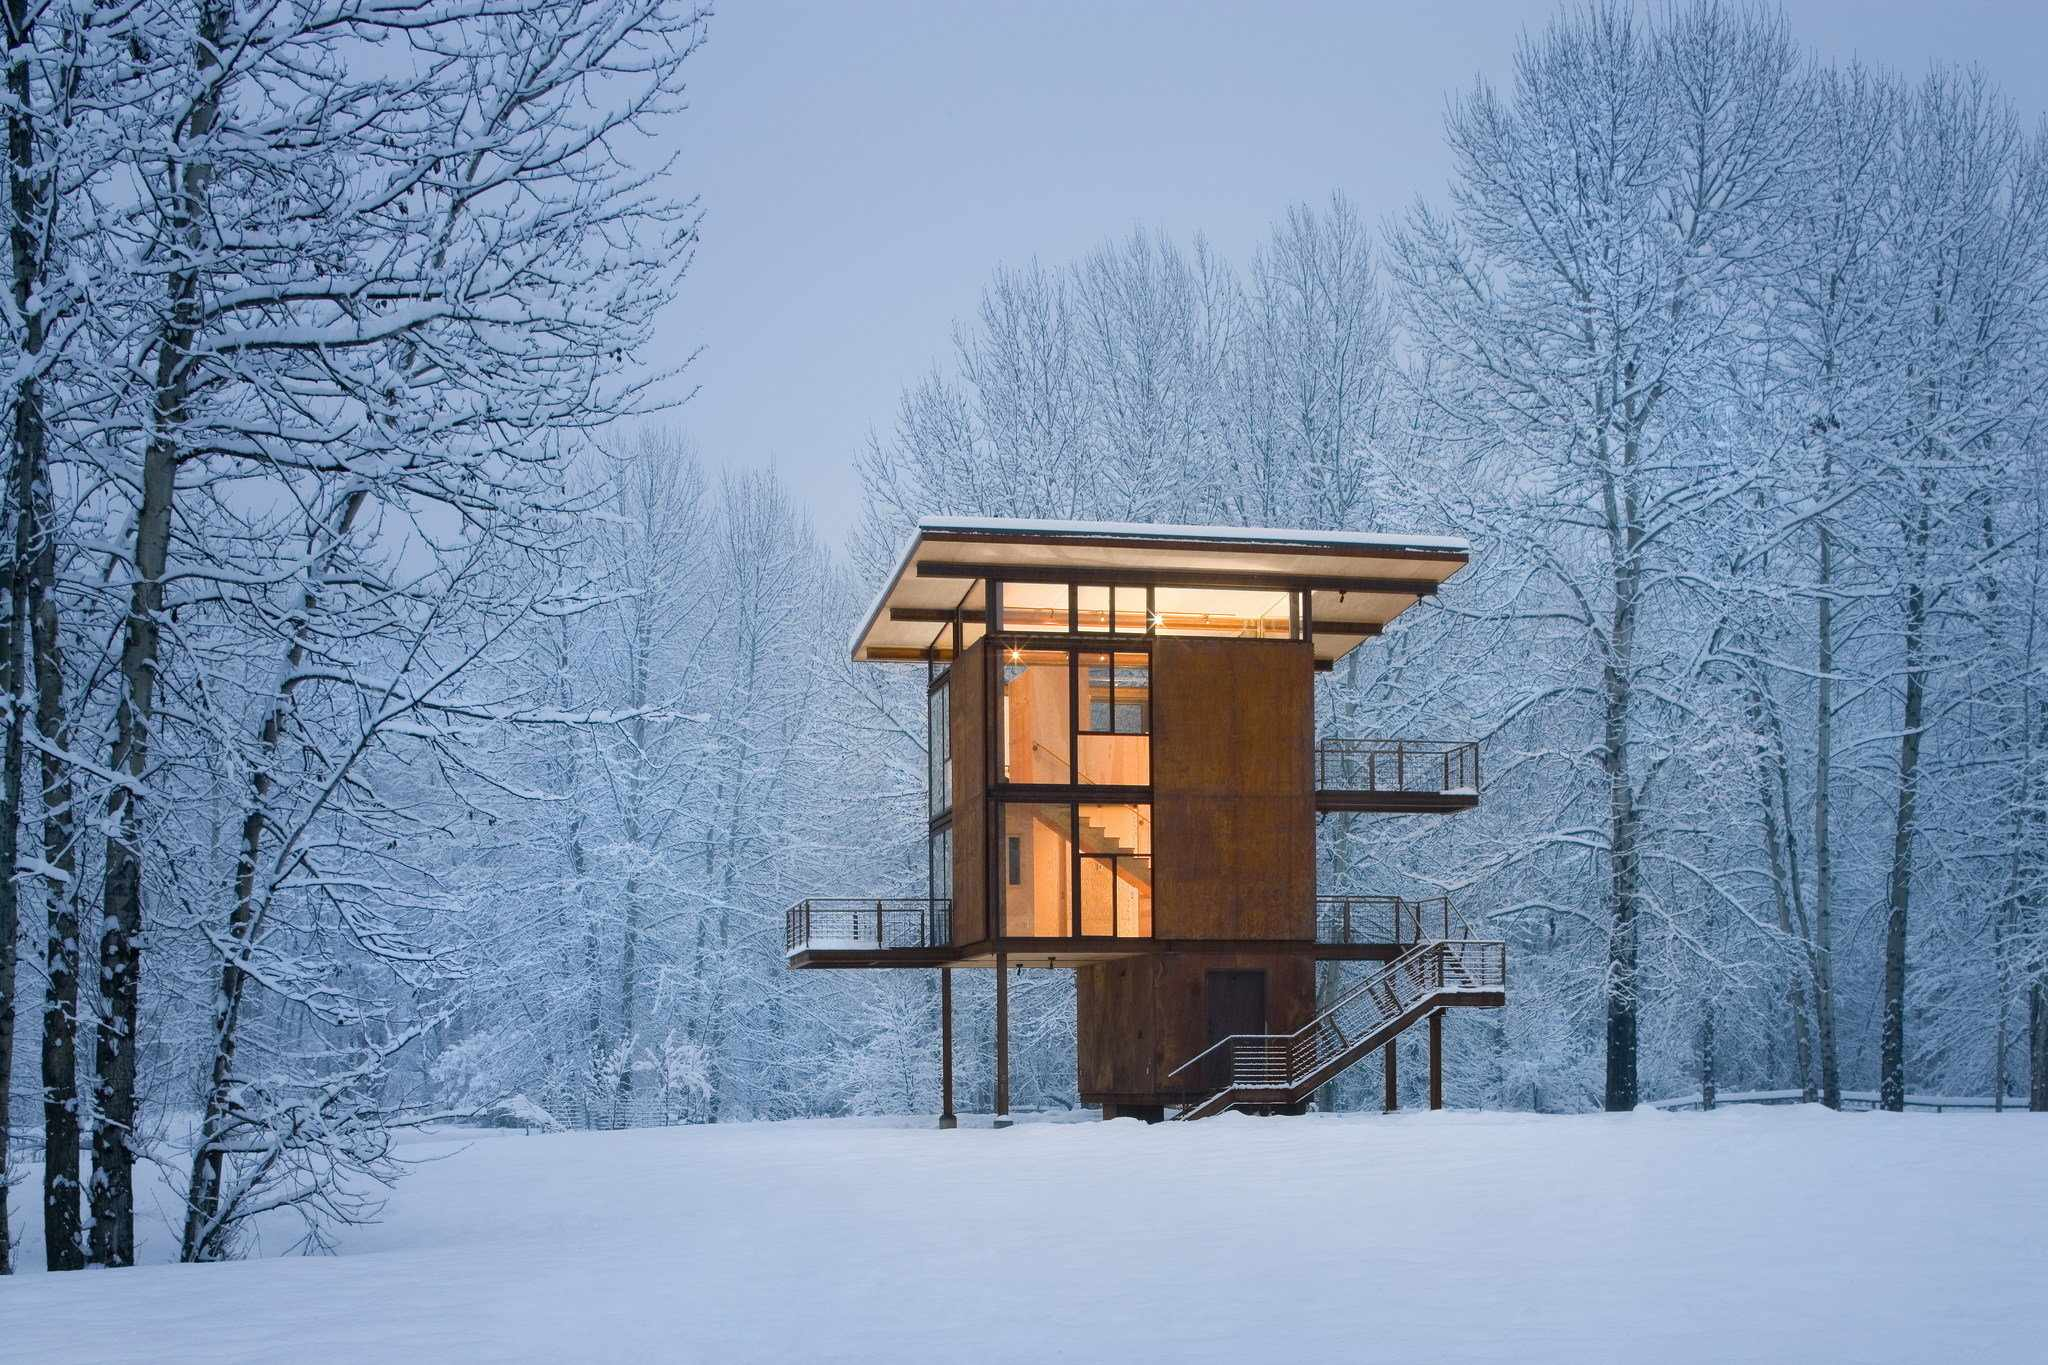 This 1,000 square-foot weekend cabin designed by architect Tom Kundig is basically a steel box on stilts and can be completely shuttered when the owner is away. Situated near a river in a floodplain, the 20' x 20' square footprint rises three stories and is topped by the living room/kitchen. Large, 10' x 18' steel shutters can be closed simultaneously using a hand crank. (Photo by Tim Bies courtesy Olson Kundig Architects)